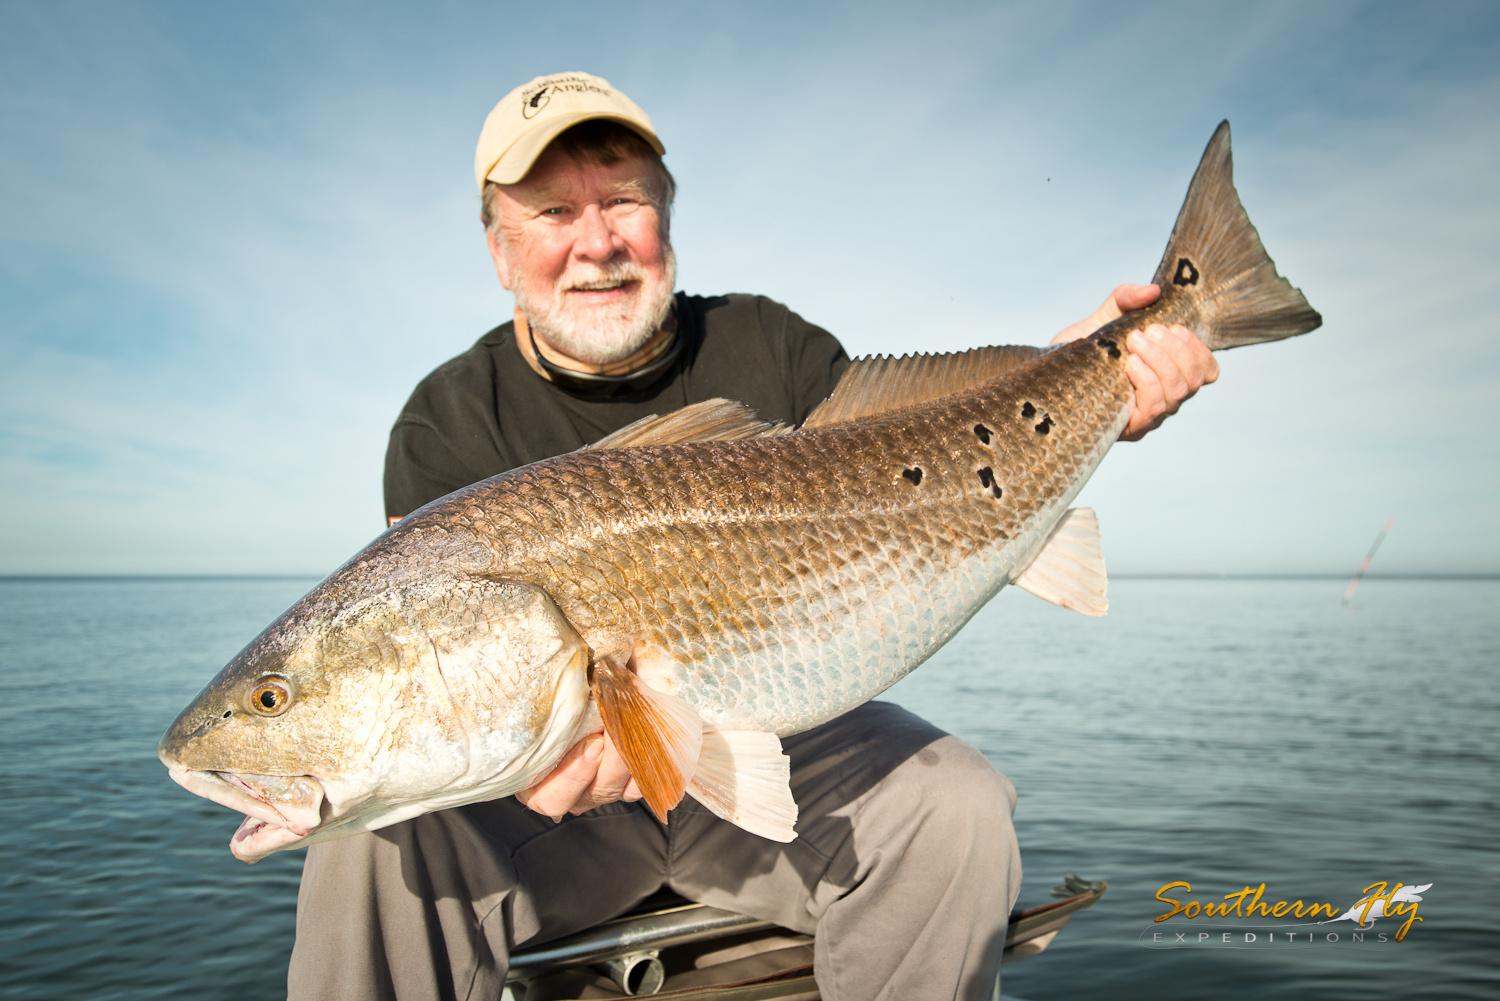 Southern Fly Expeditions - fly fishing with Captain Brandon Keck